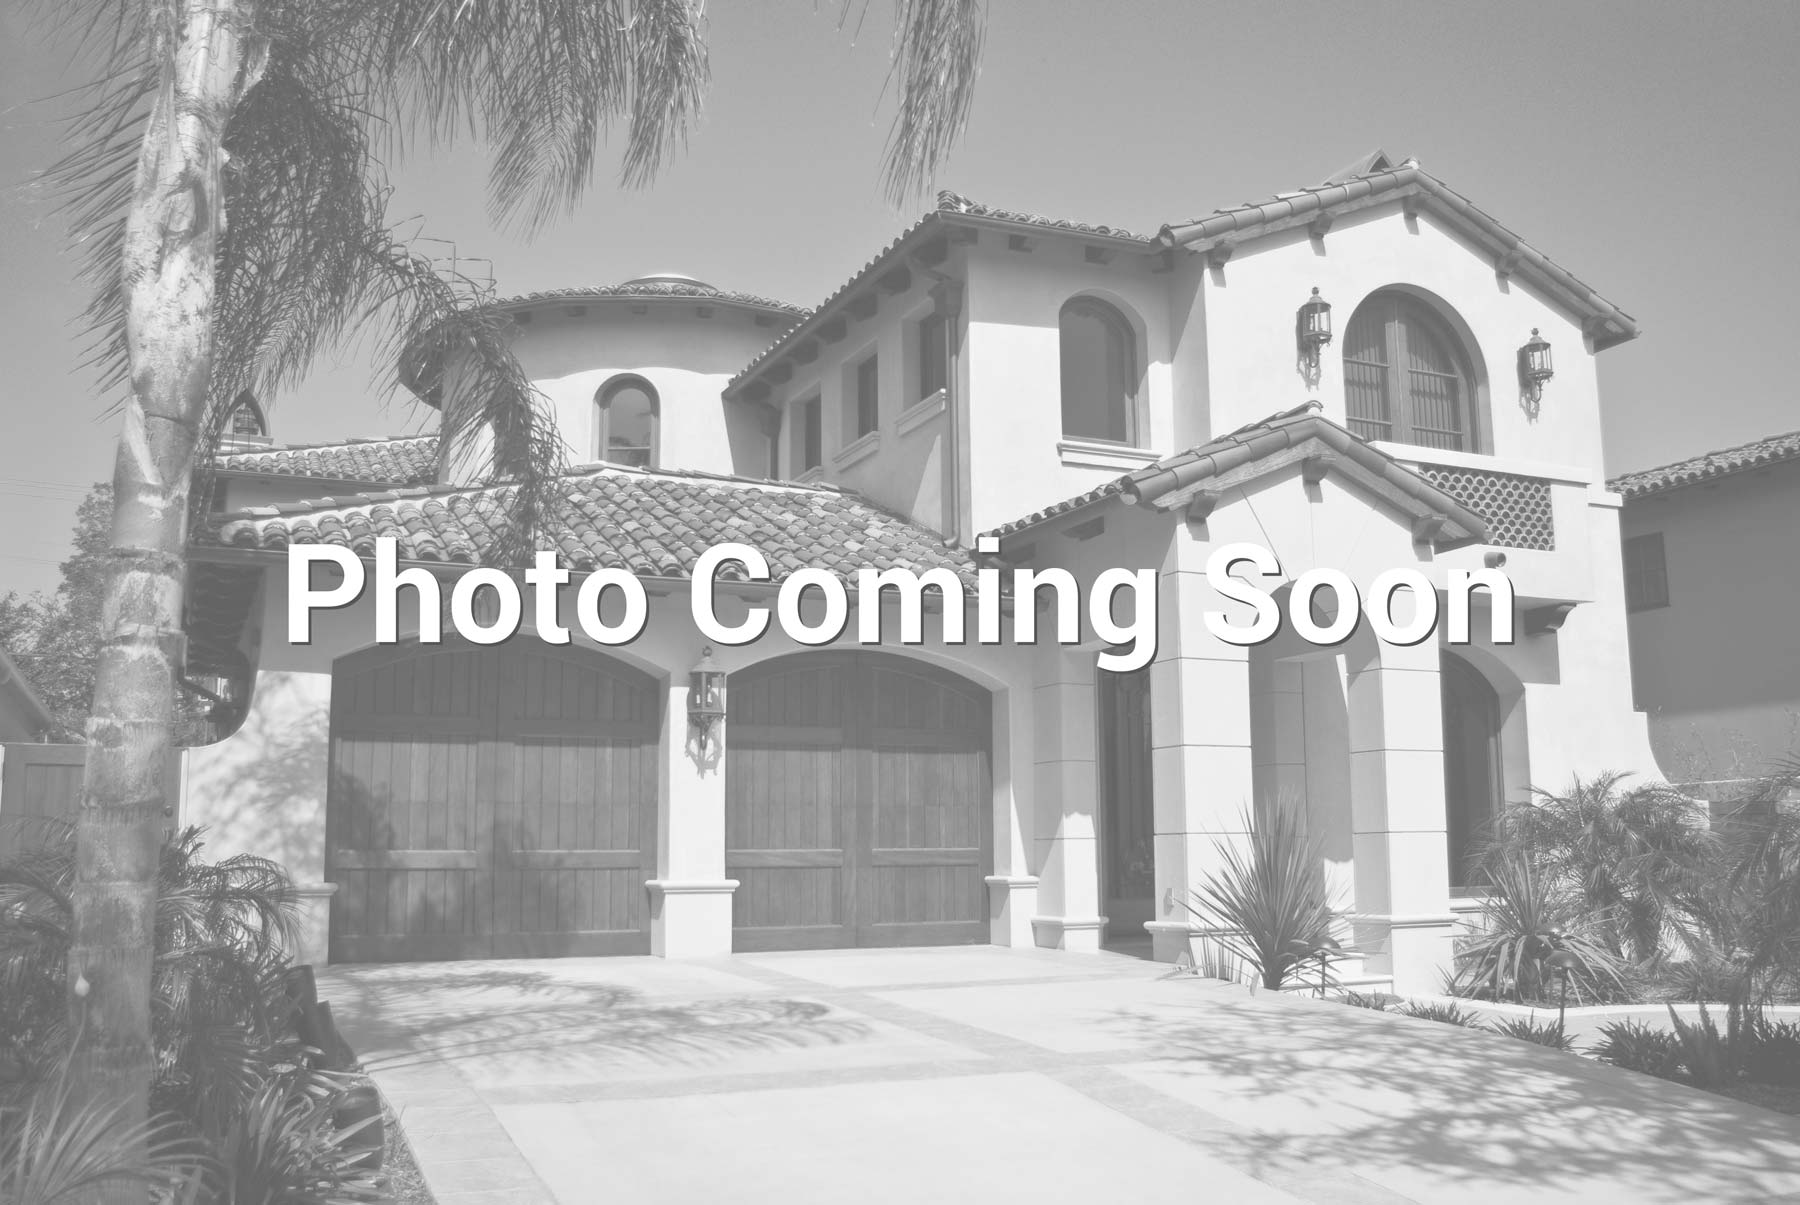 $1,350,000 - 5Br/5Ba - Home for Sale in Metes And Bounds, Scottsdale